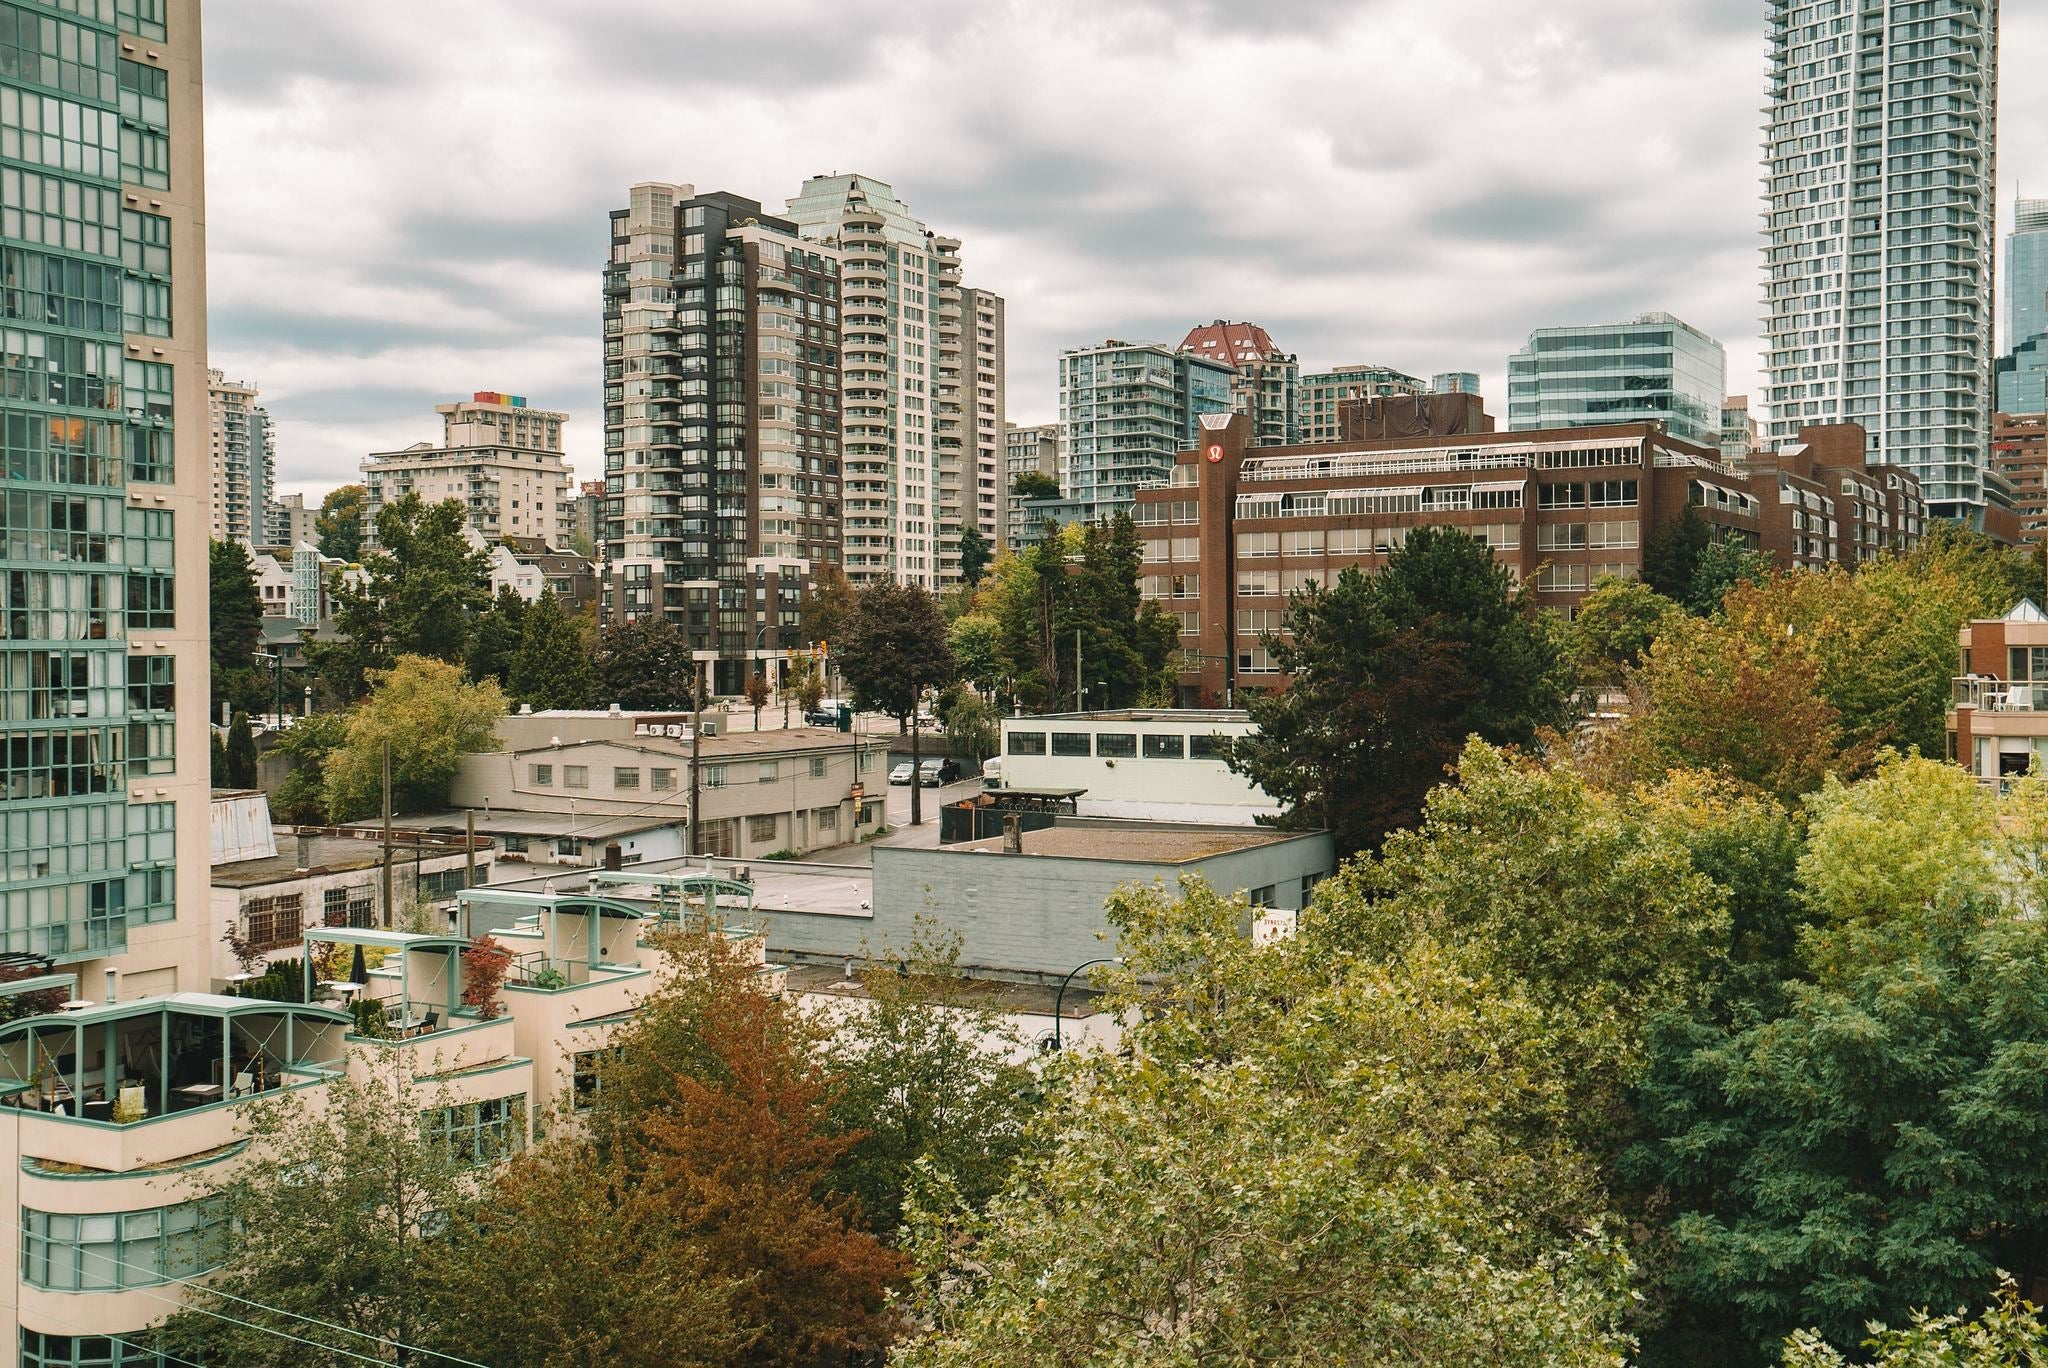 1009 1500 HORNBY STREET - Yaletown Apartment/Condo for sale, 2 Bedrooms (R2617441) - #30